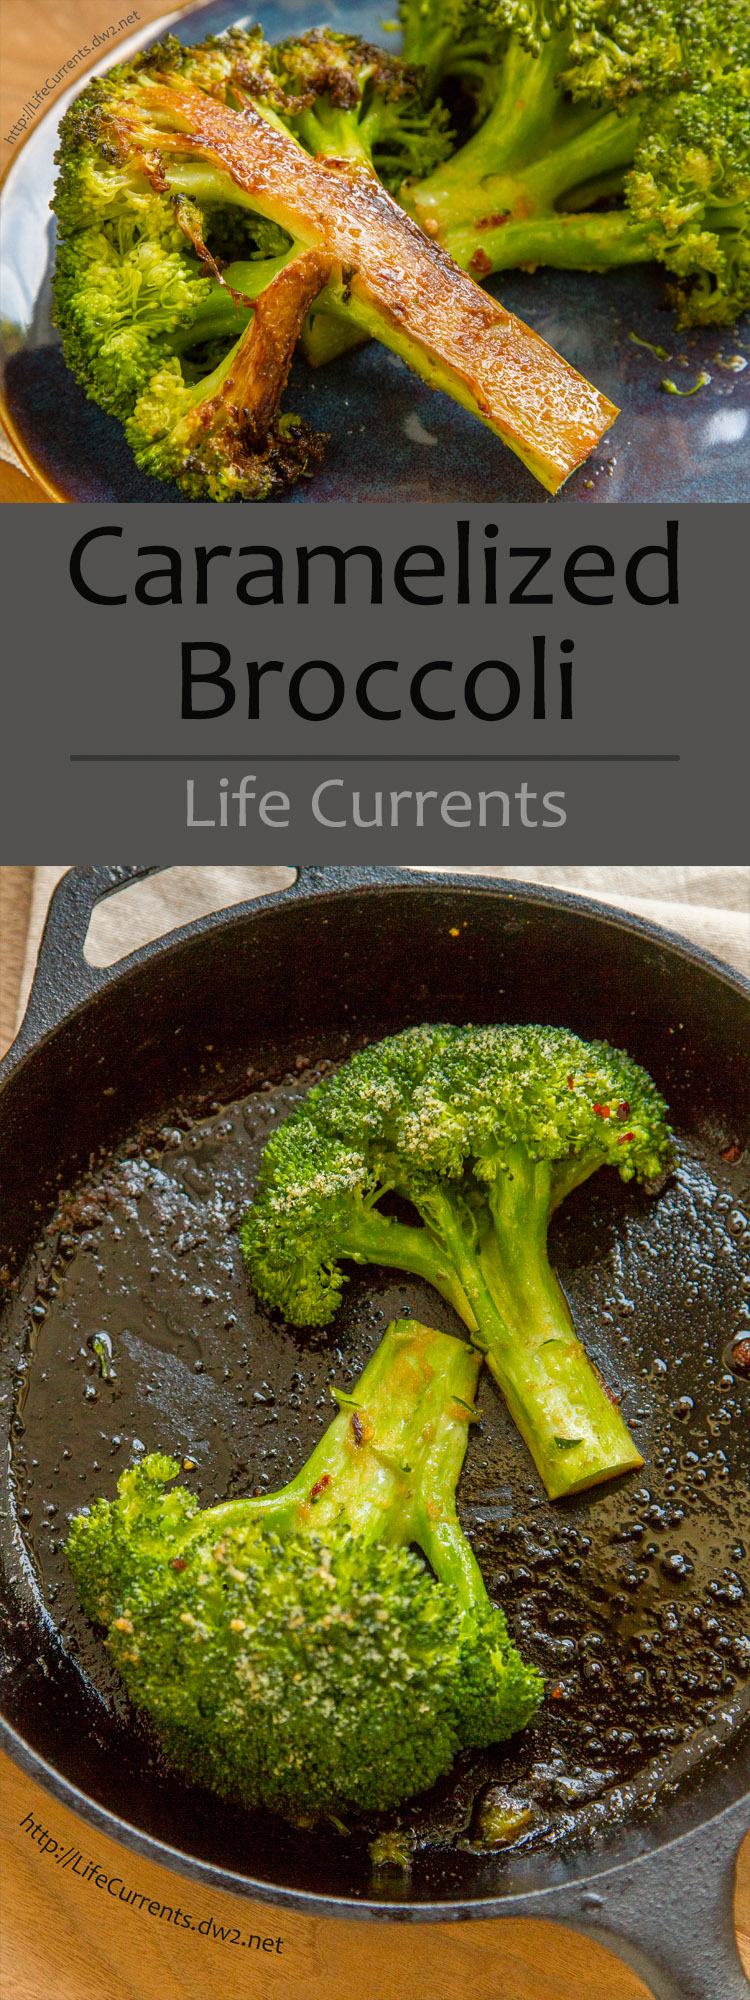 Even if you have picky eaters at home who say they don't like broccoli, this recipe for Caramelized Broccoli will get them to change their minds!